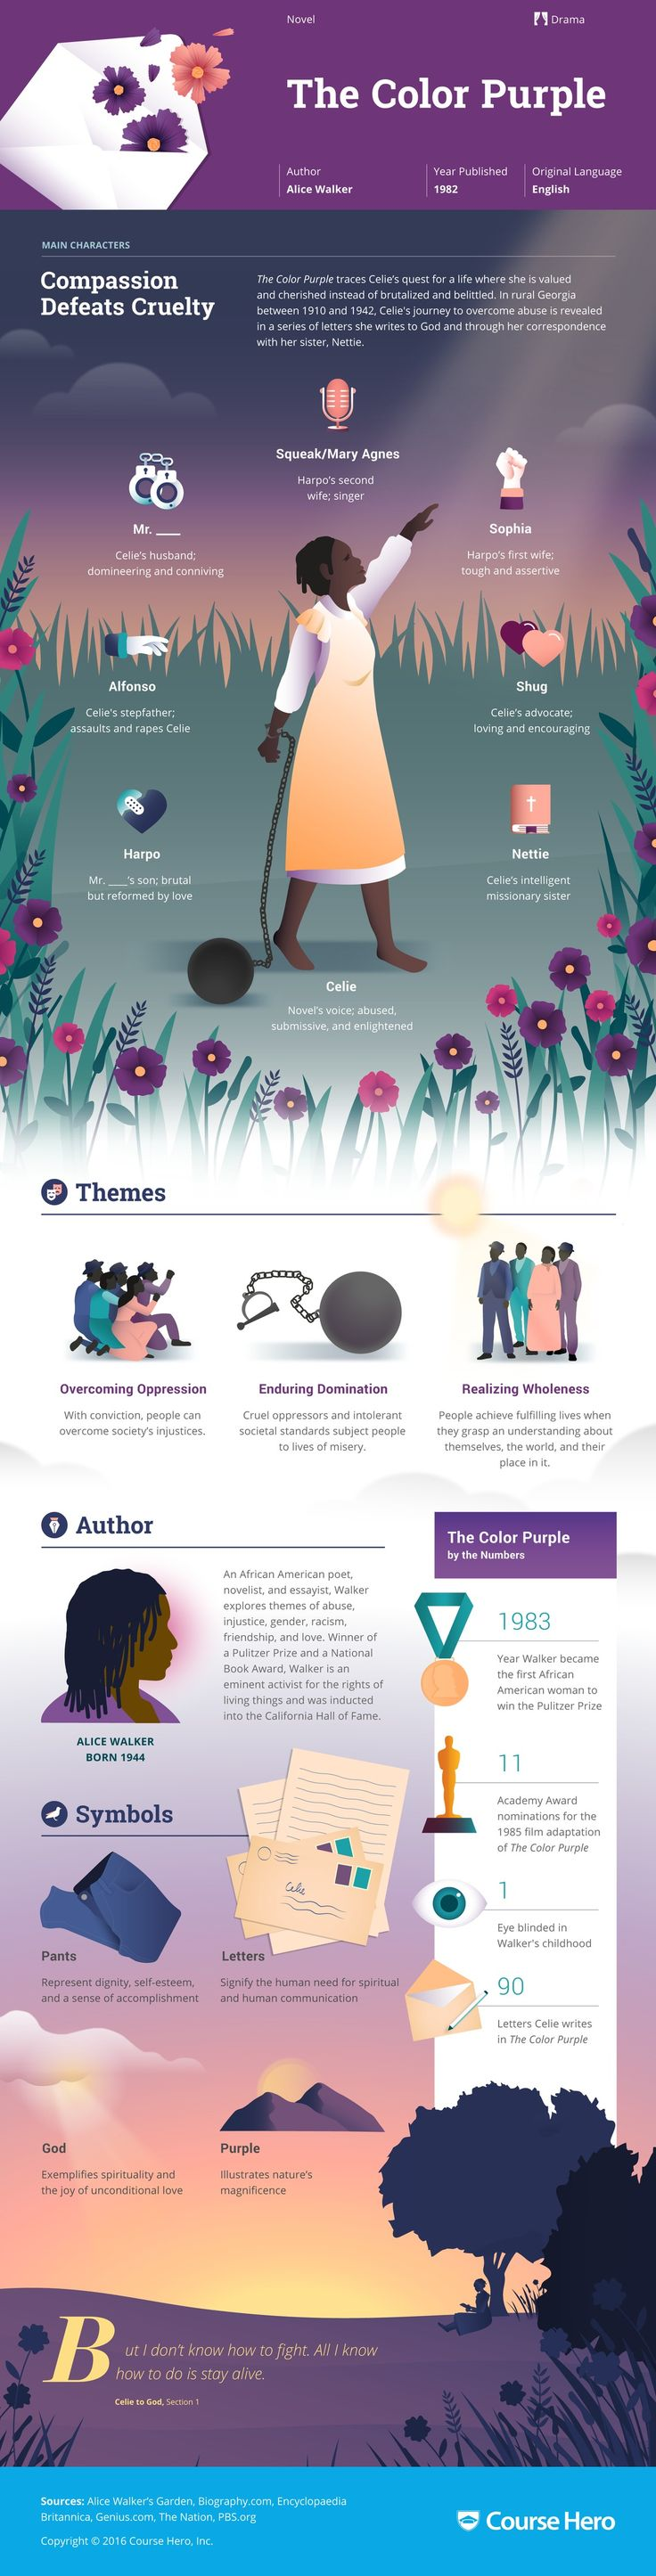 The Color Purple Infographic | Course Hero